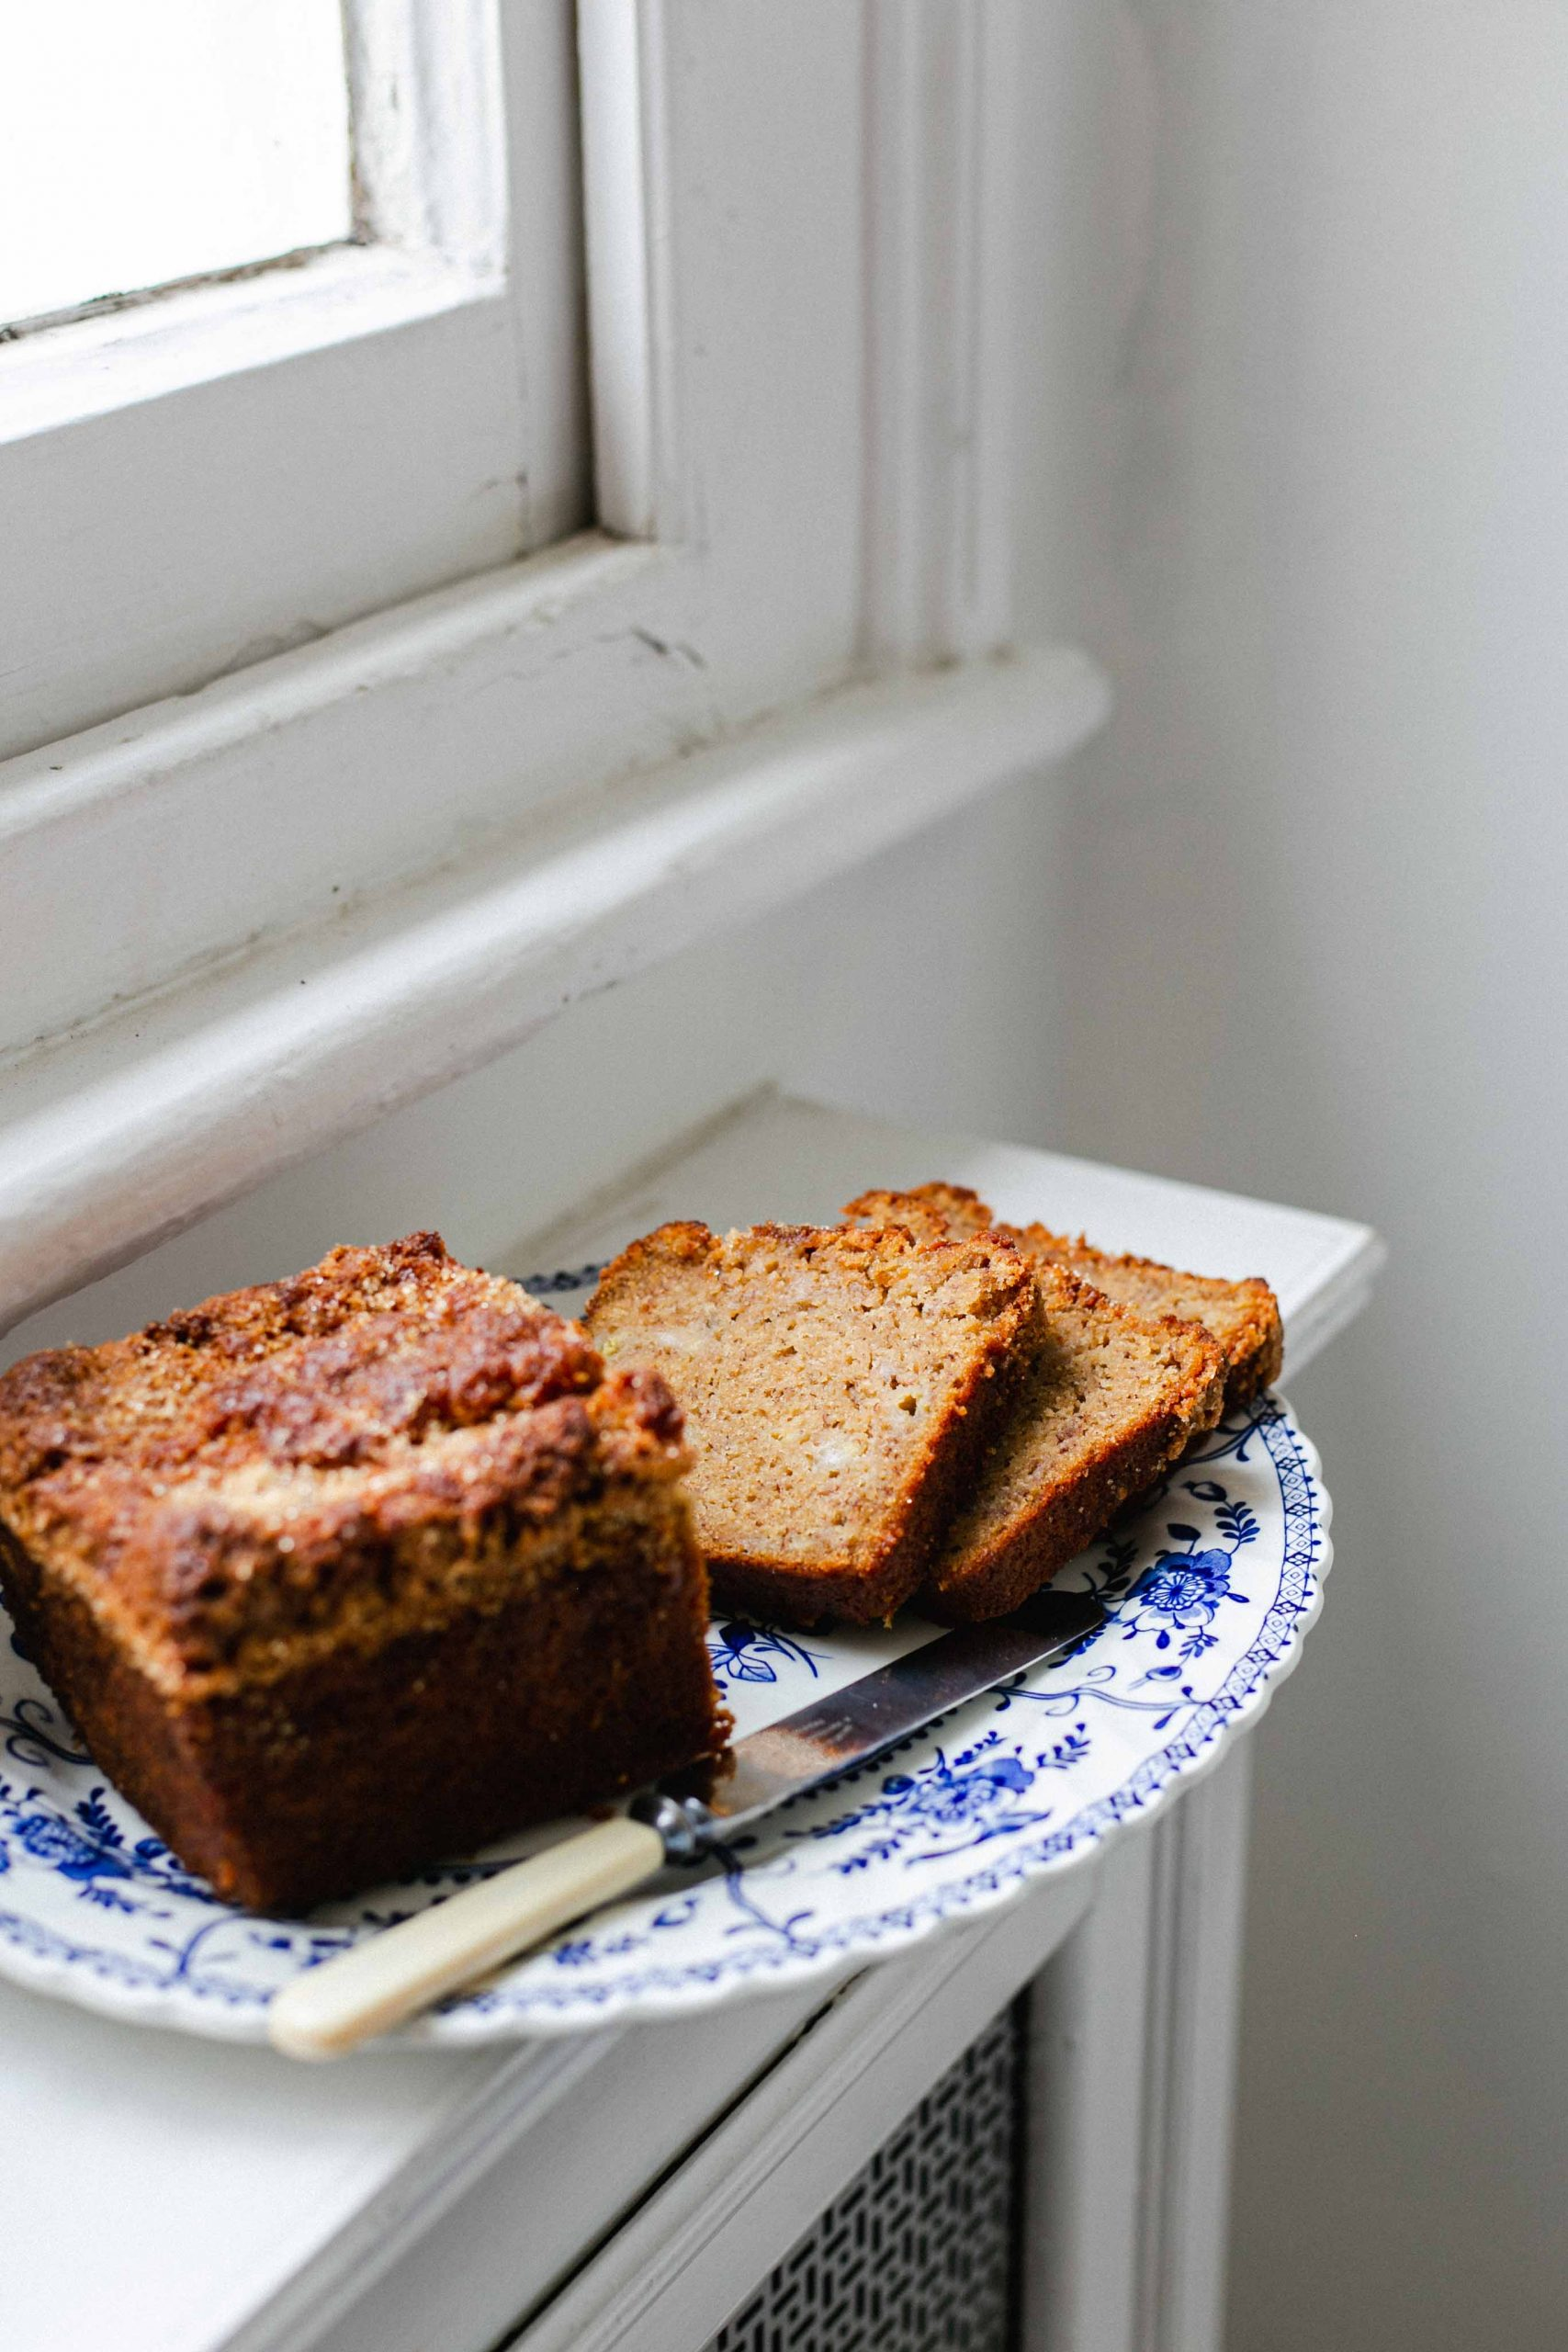 Low FODMAP banana bread on window ledge